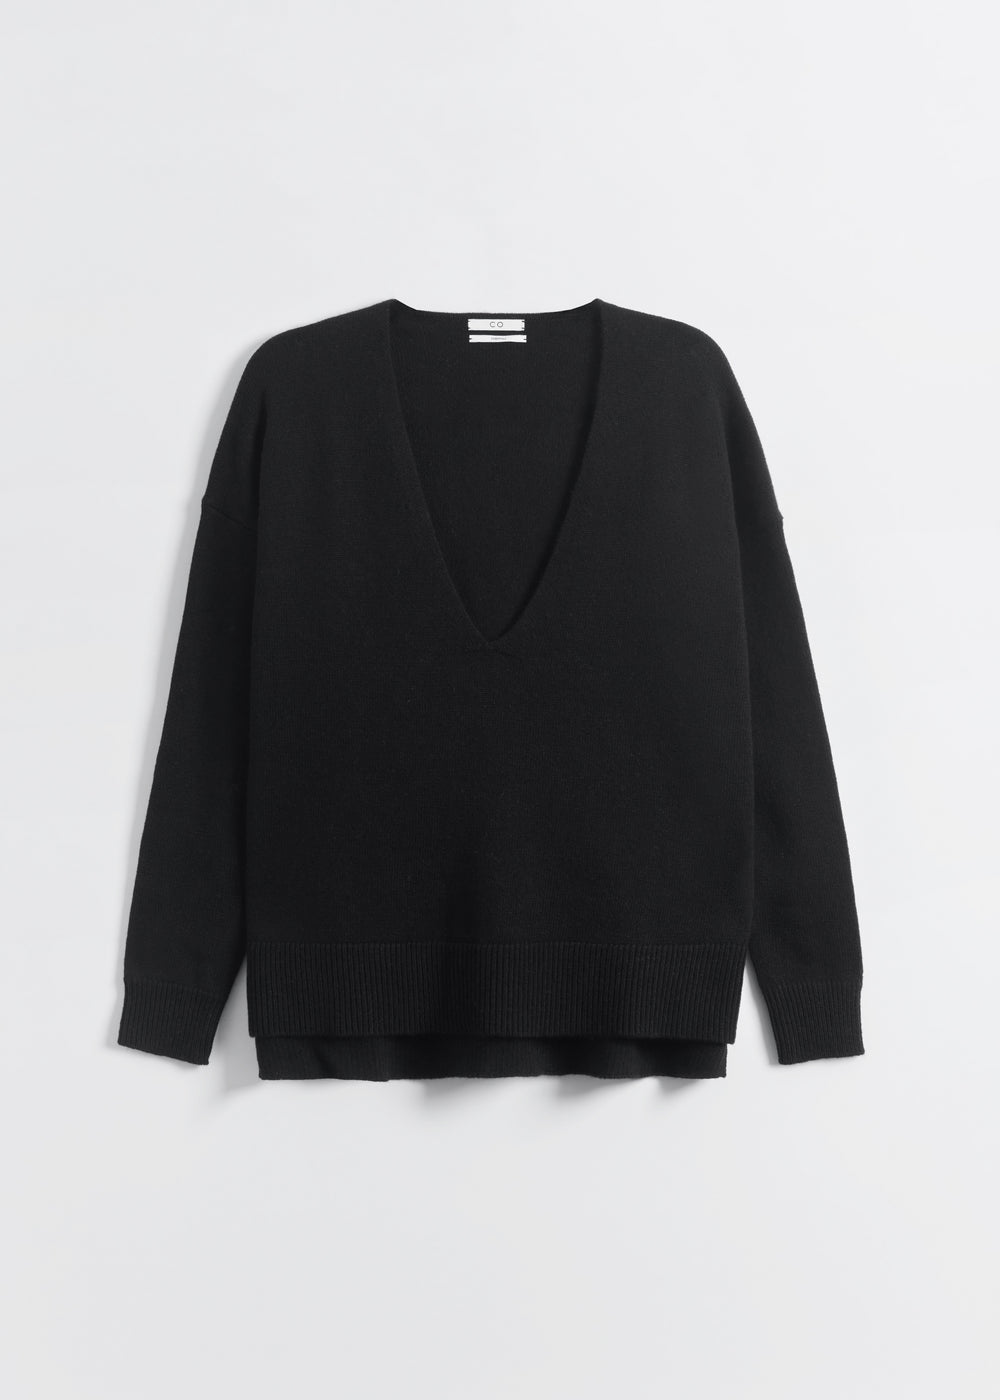 V-Neck Sweater in Wool Cashmere - Taupe in Black by Co Collections